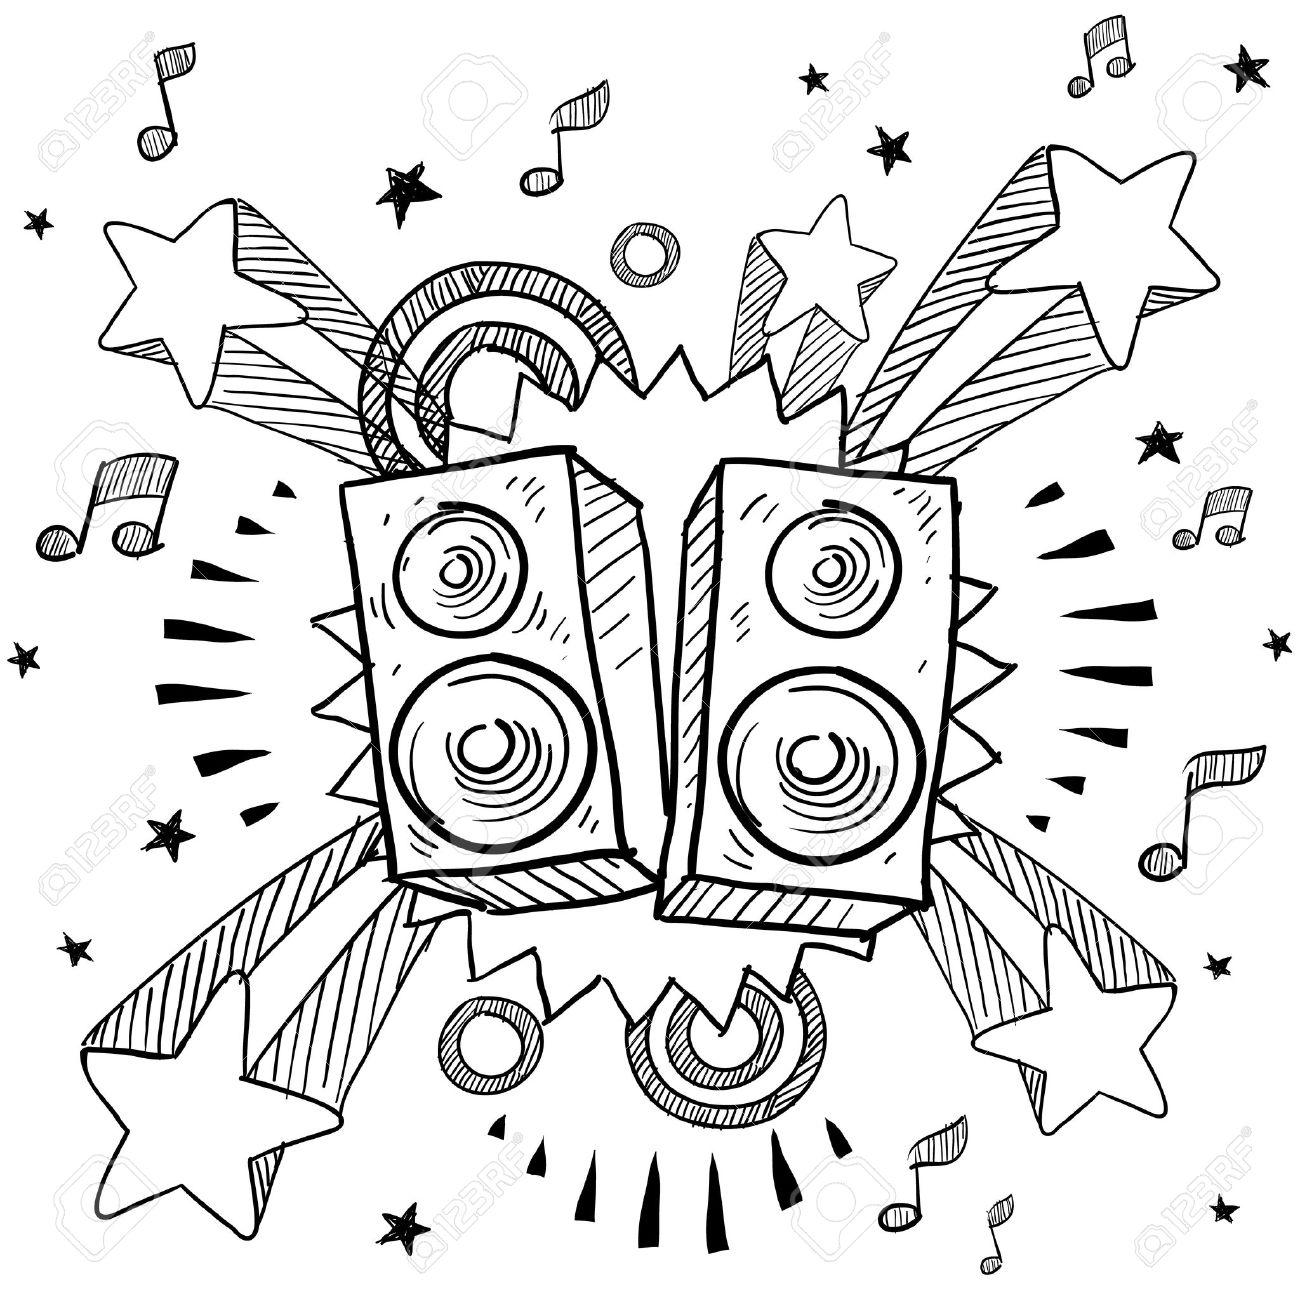 1300x1300 Doodle Style Stereo Speakers Illustration On A Retro Pop Explosion